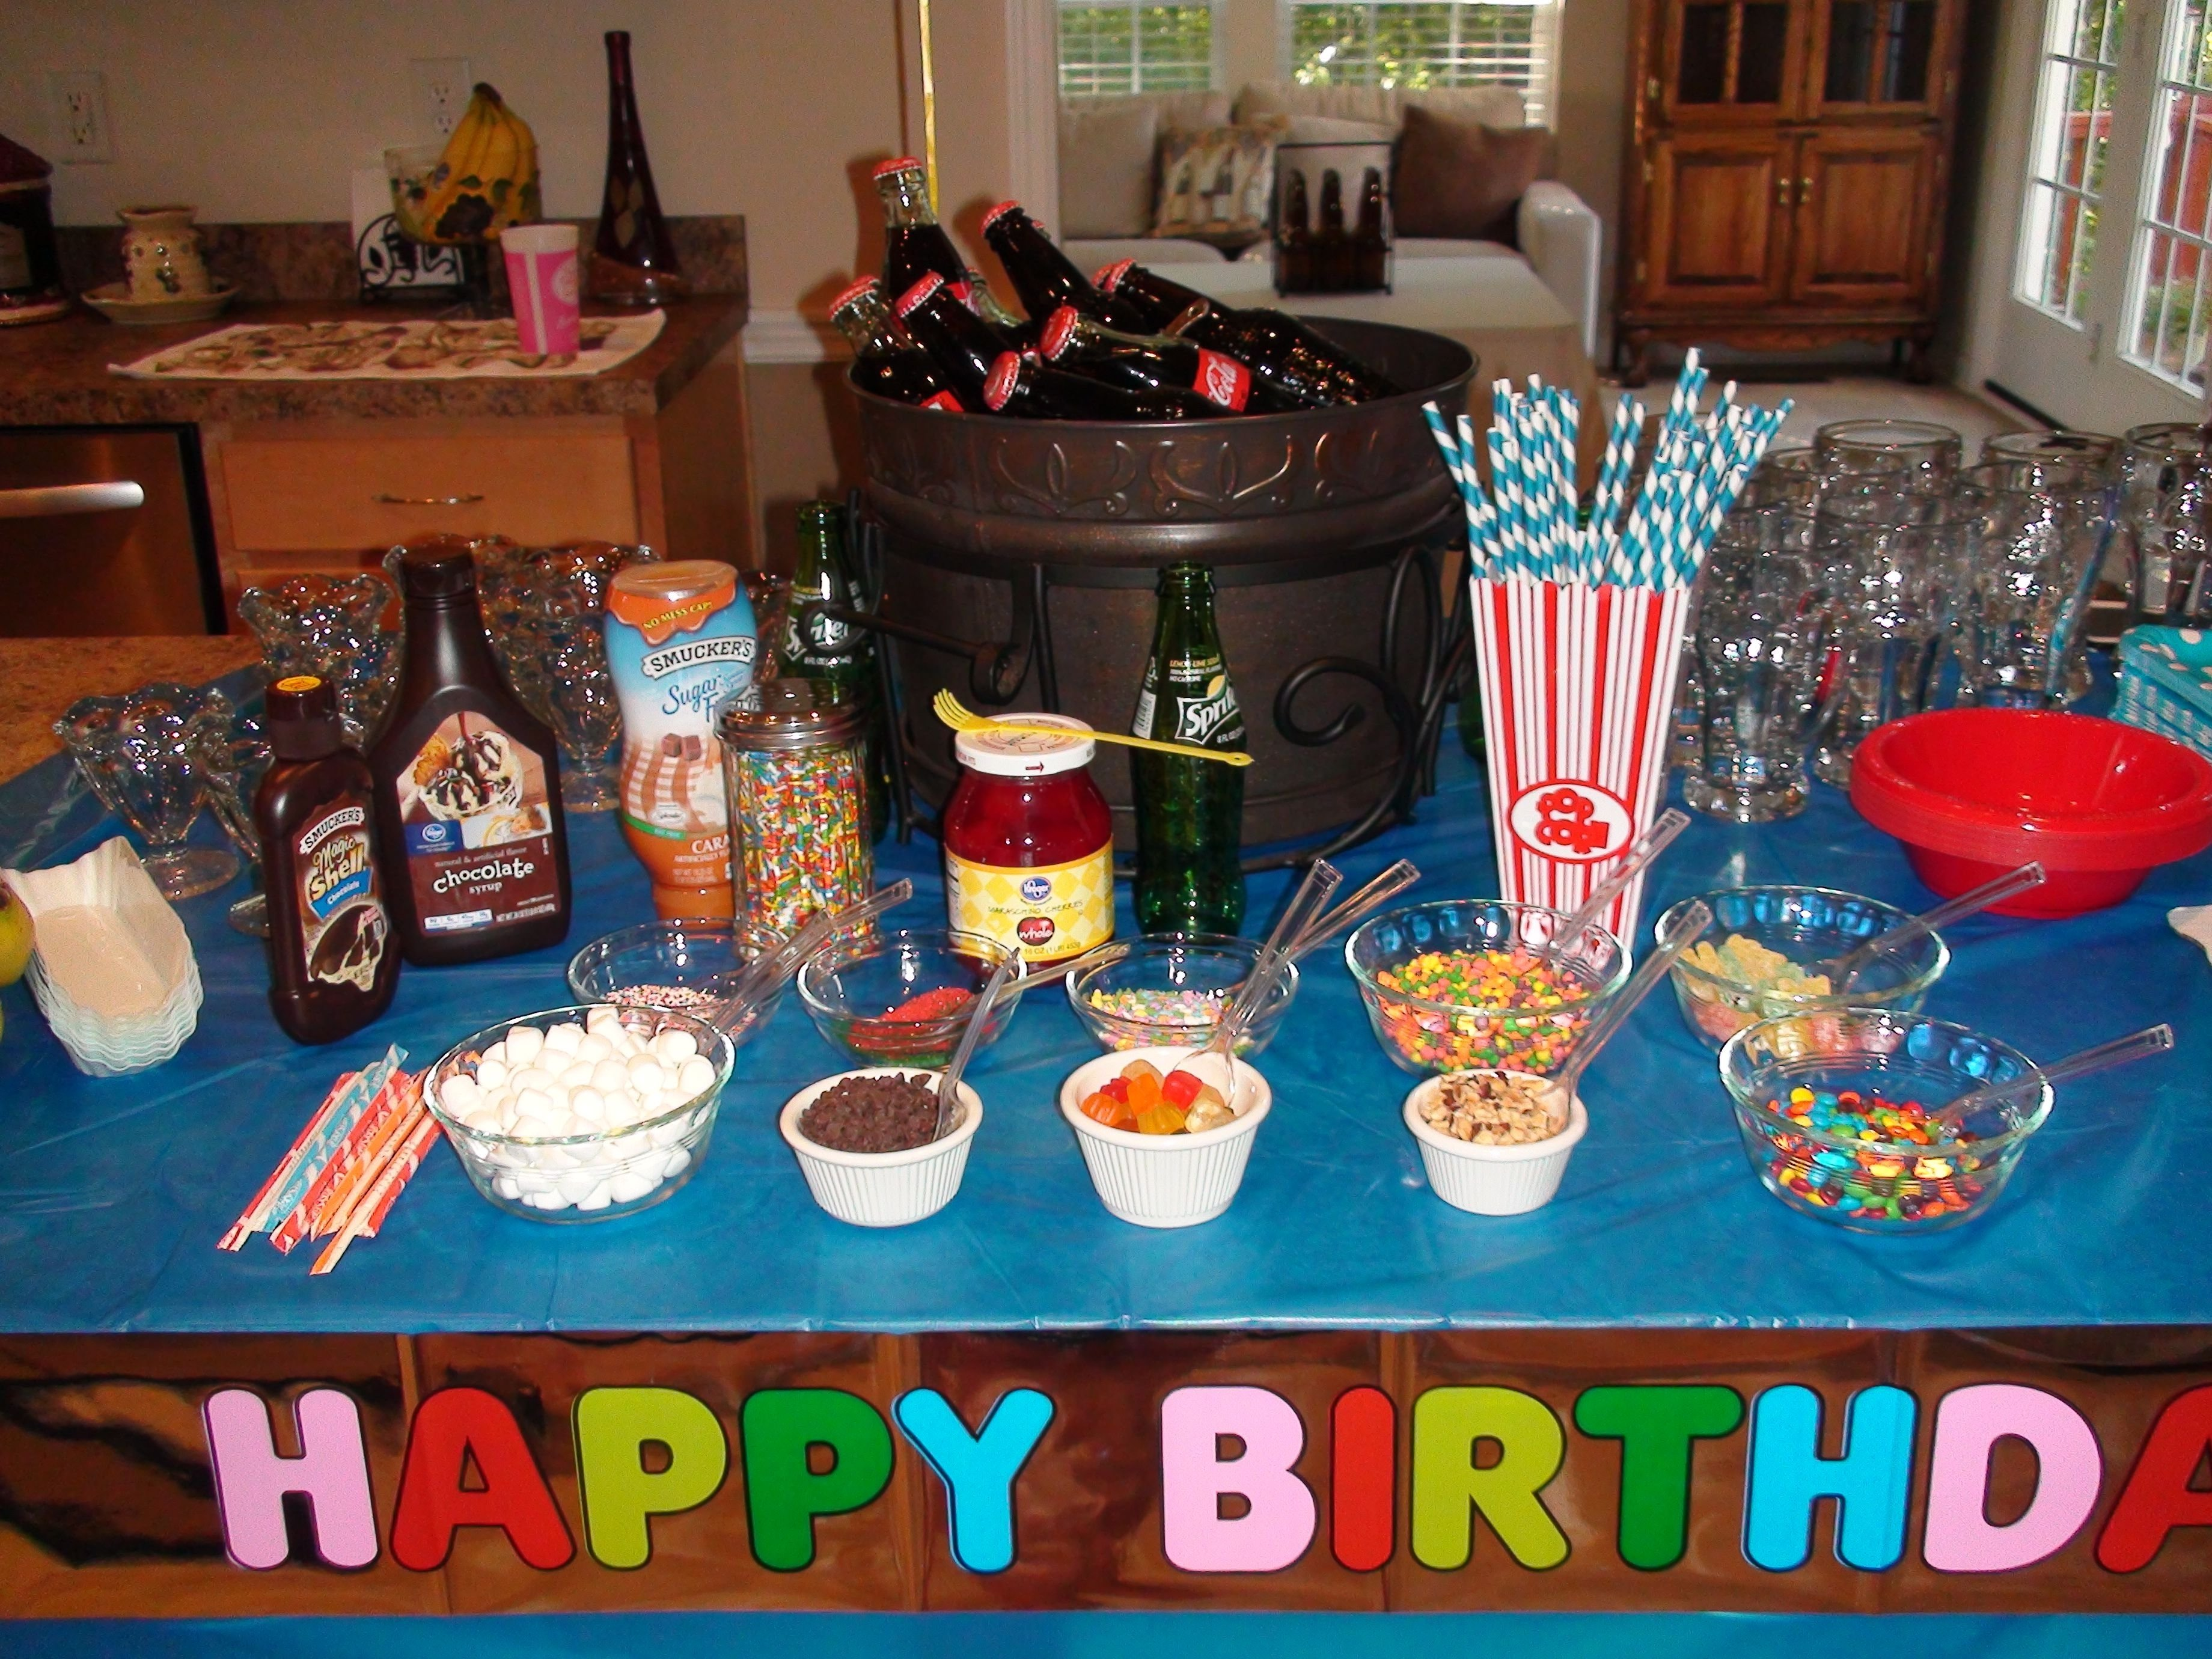 10 Beautiful Birthday Ideas For 12 Yr Old Girl 12 year old party root beer floats banana splits ice cream with 11 2020